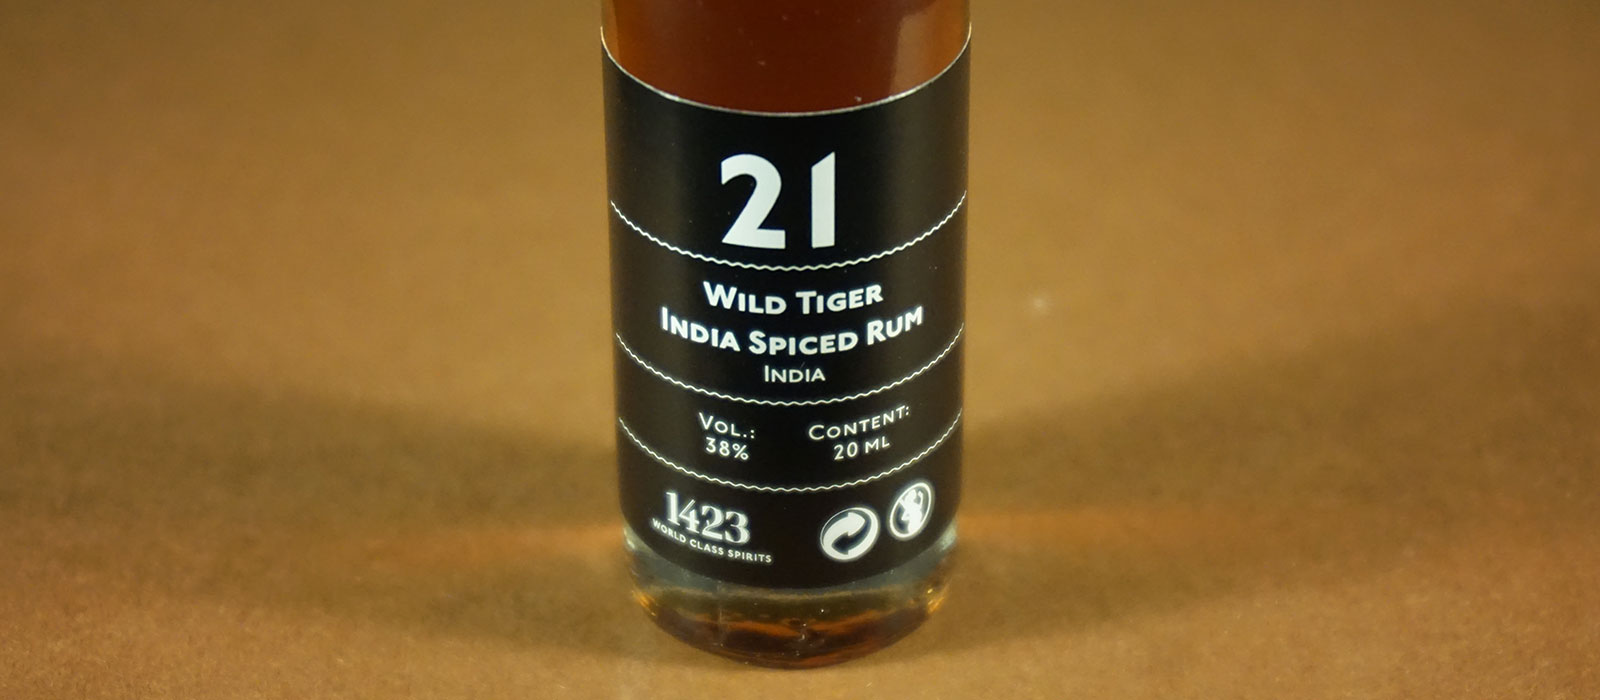 24 Days of Rum 2017: Dag 21 – Wild Tiger India Spiced Rum